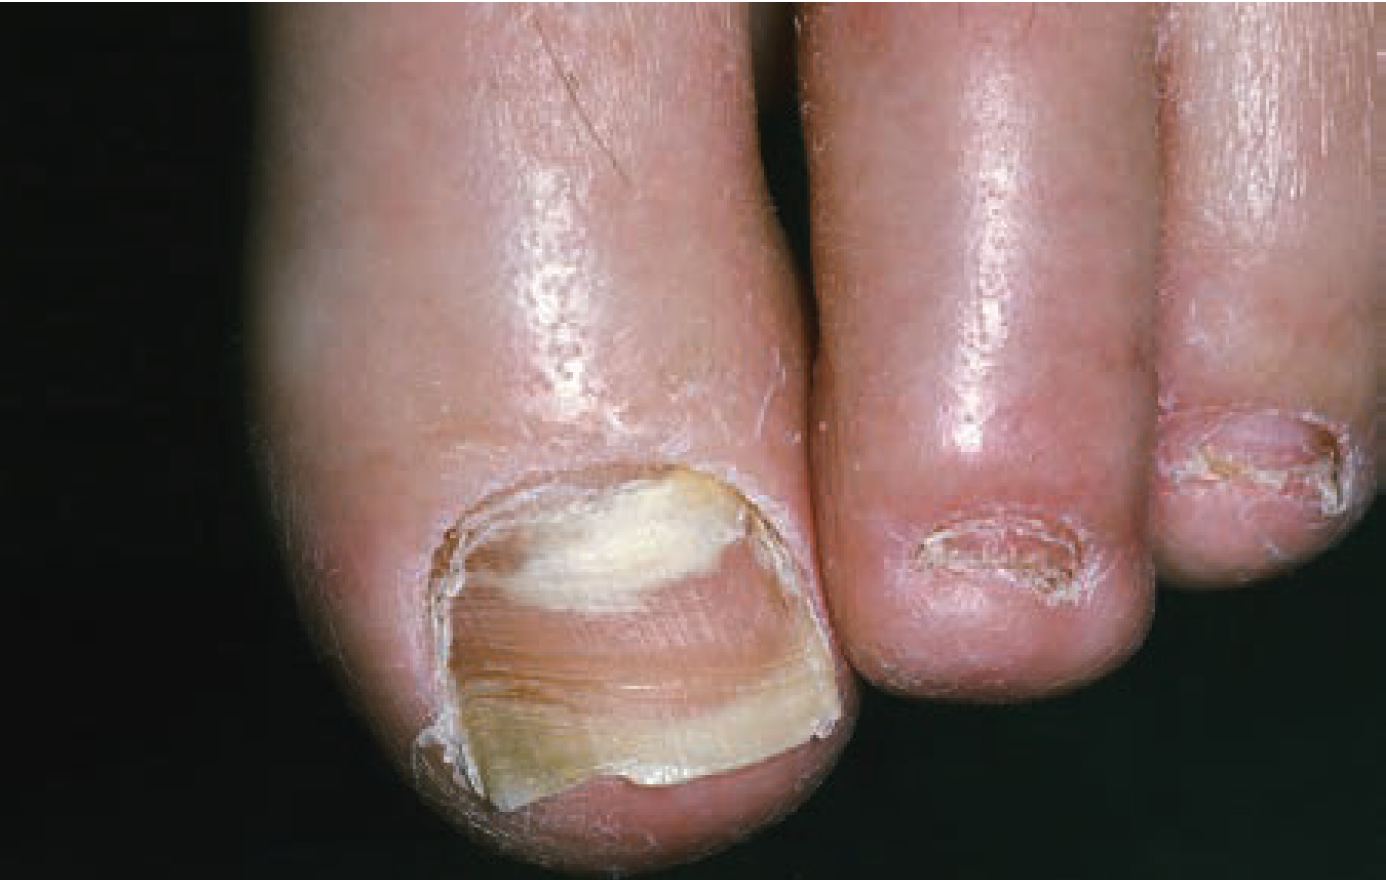 proximal white onychomycosis in the first digit